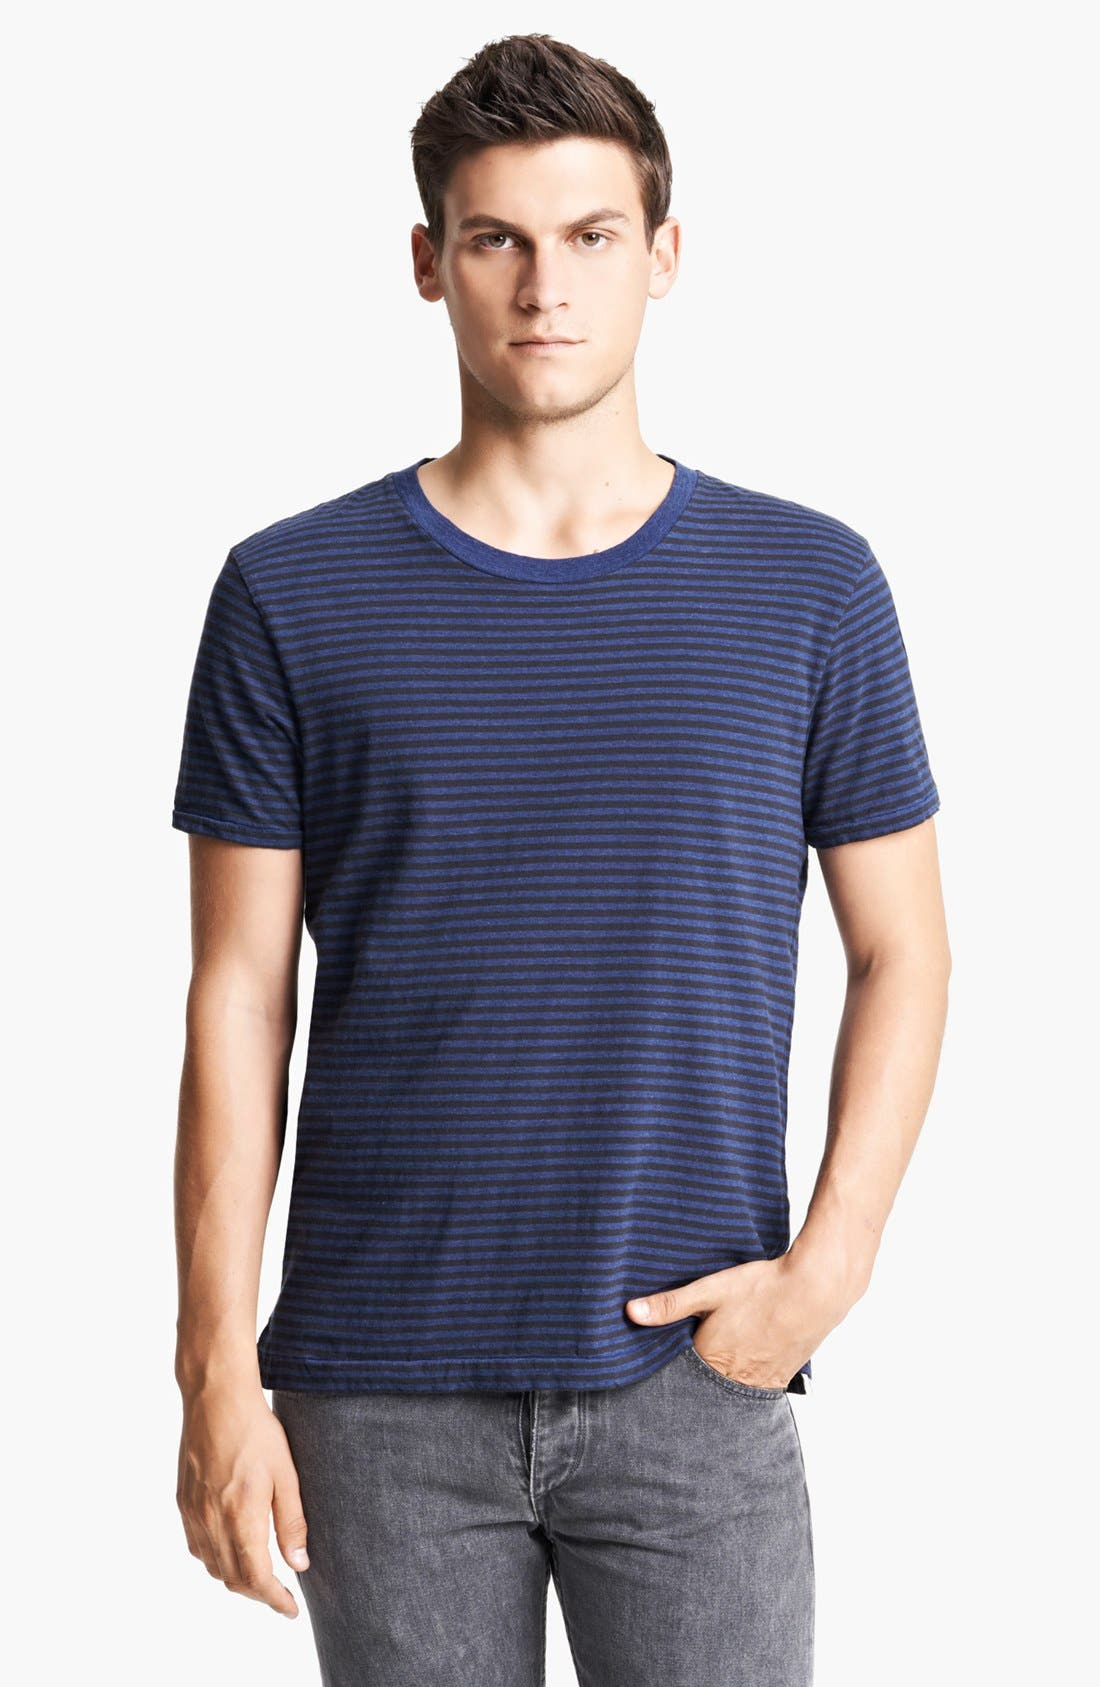 Alternate Image 1 Selected - rag & bone Perfect Stripe Crewneck T-Shirt